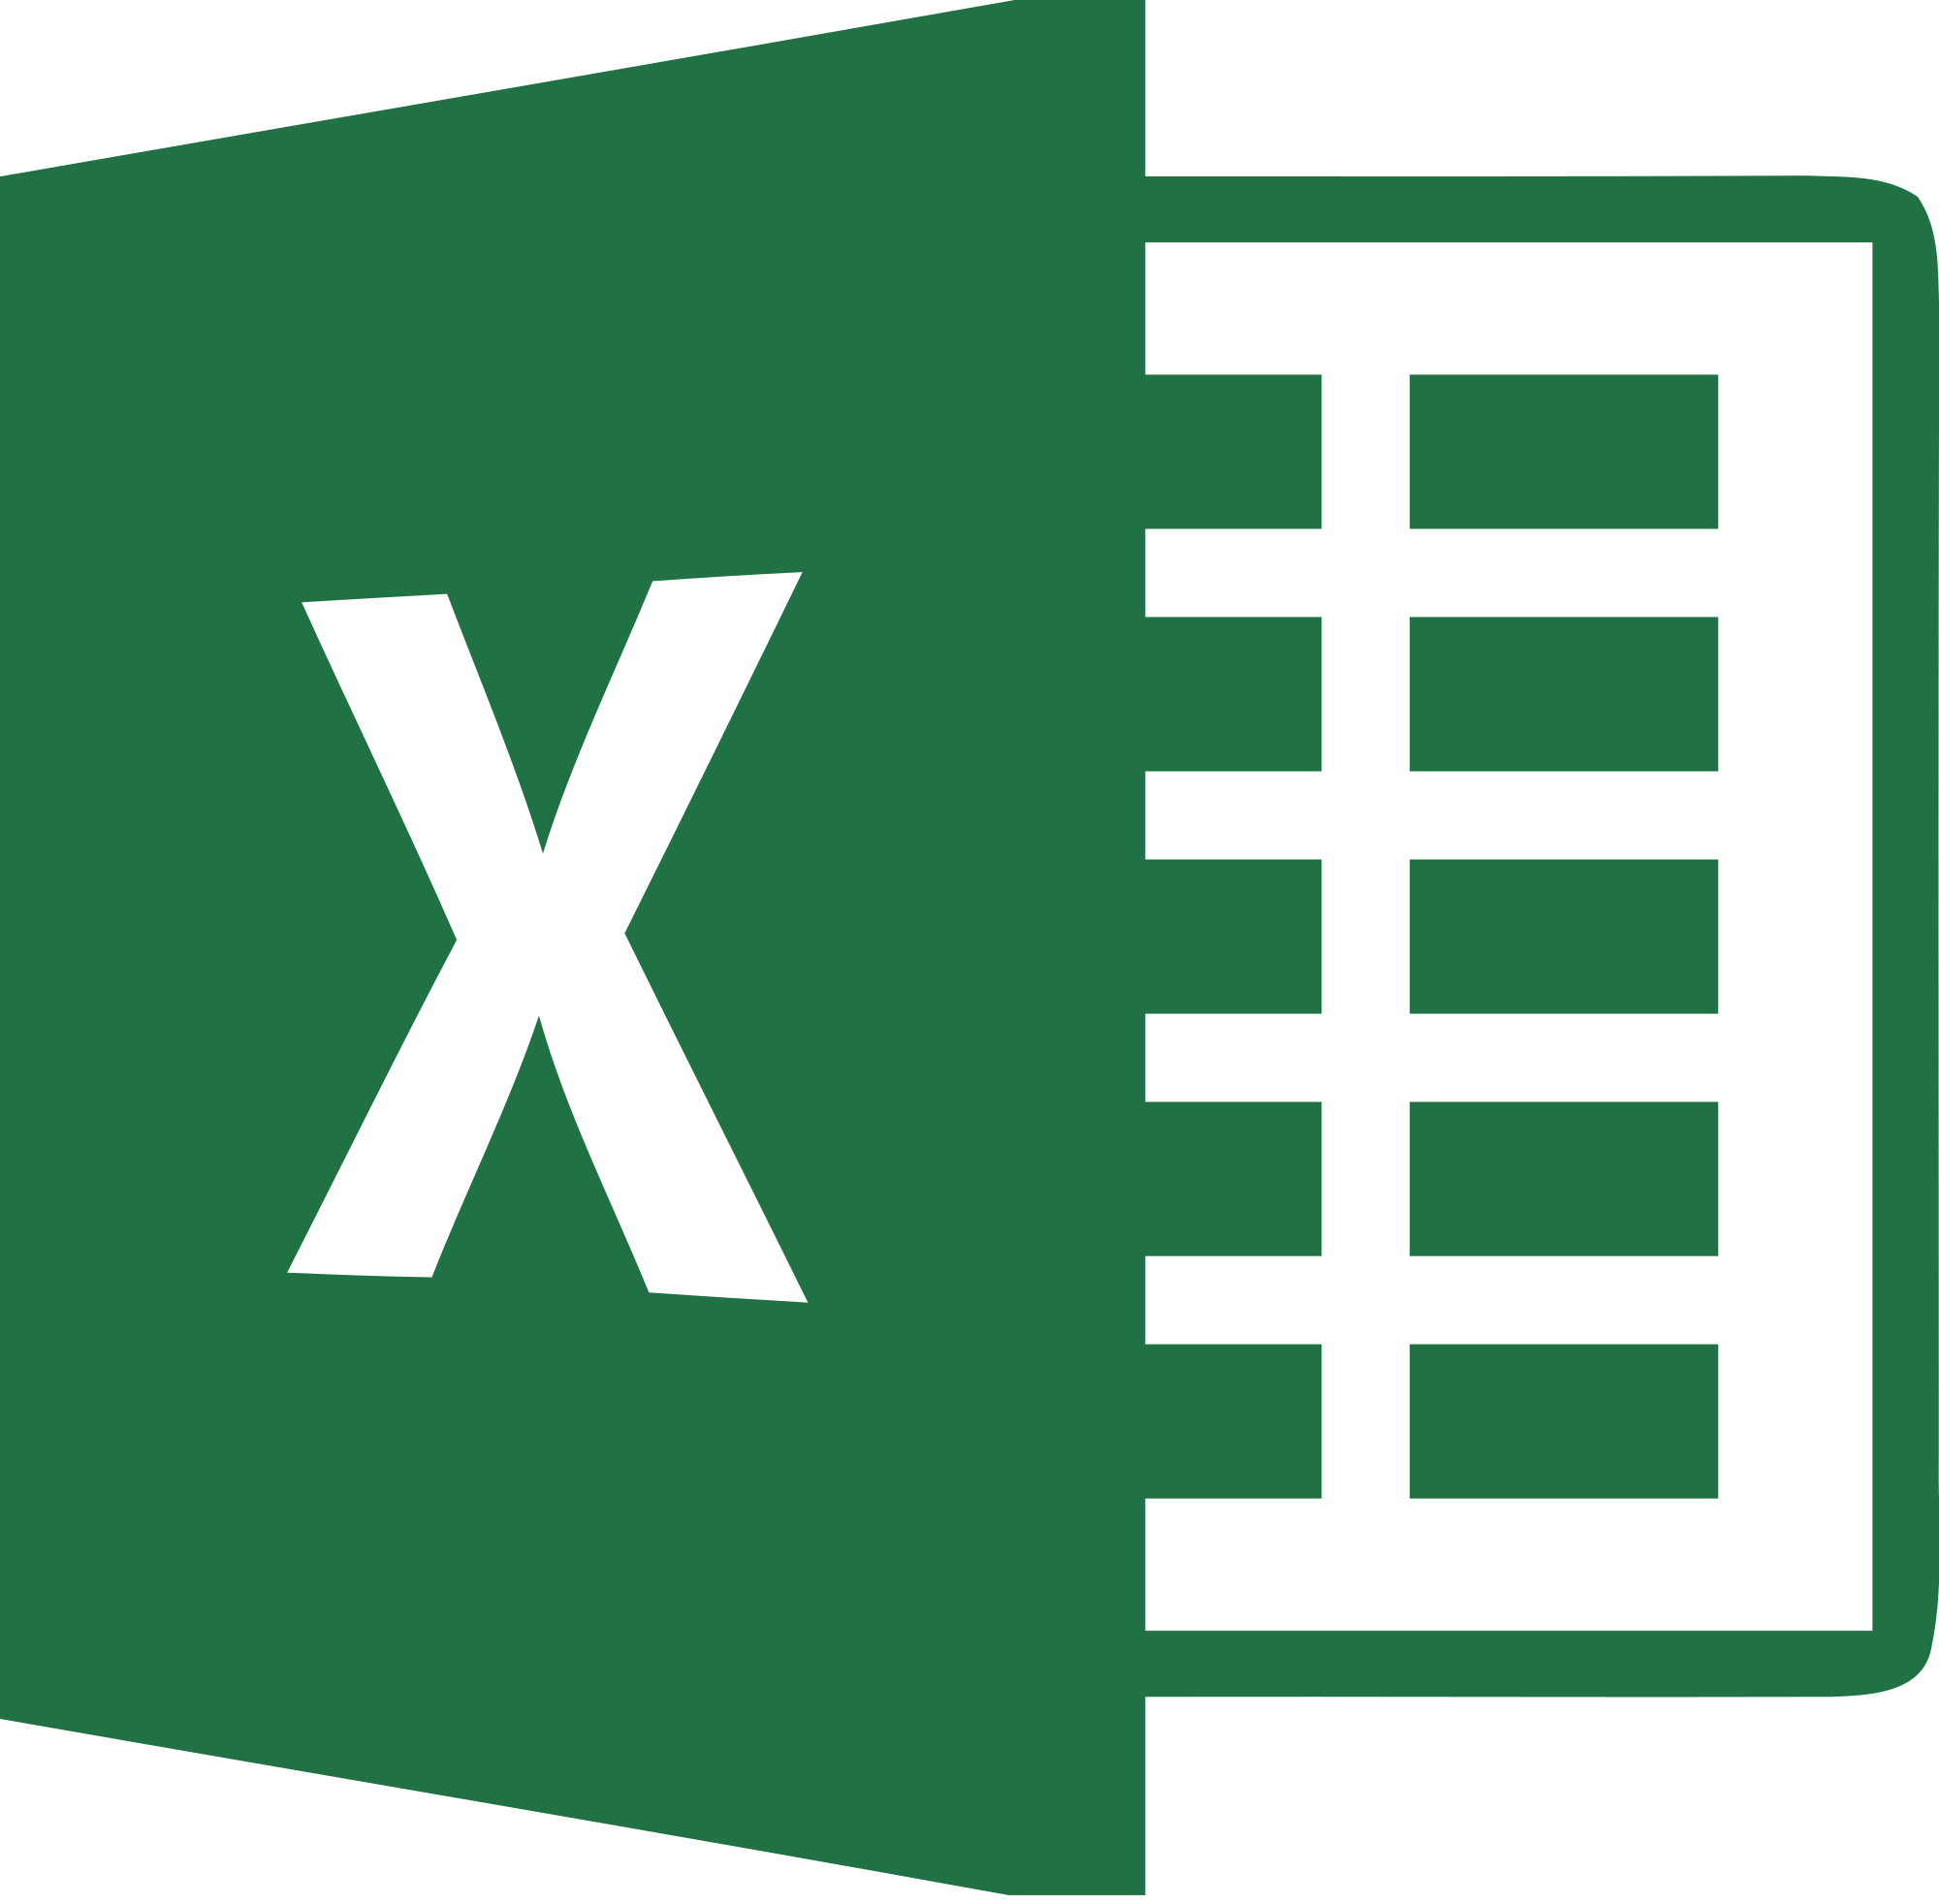 12 Things You Can Do With Excel